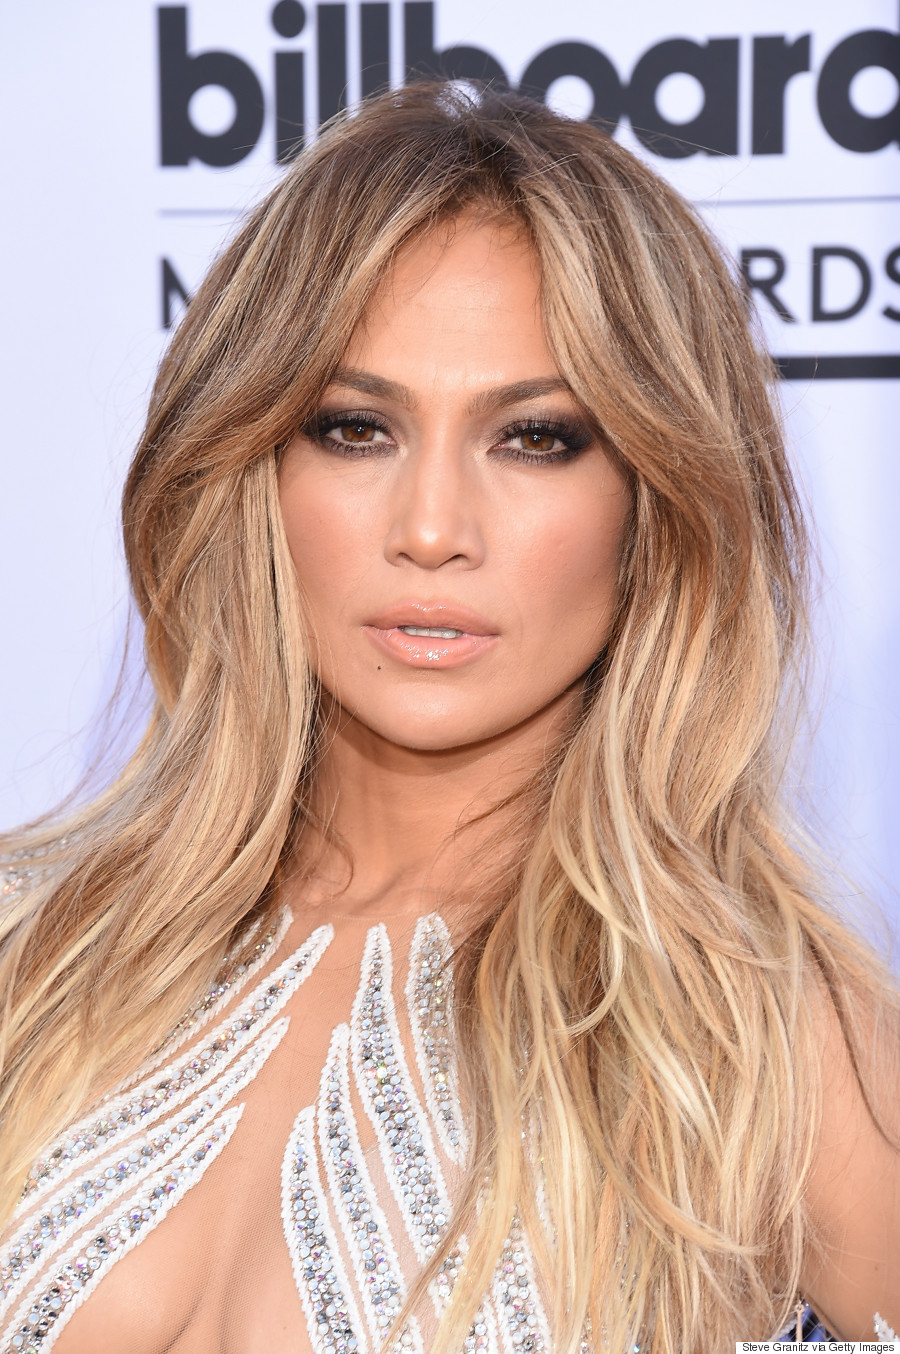 Jennifer Lopez S Billboard Music Awards 2015 Dress Leaves